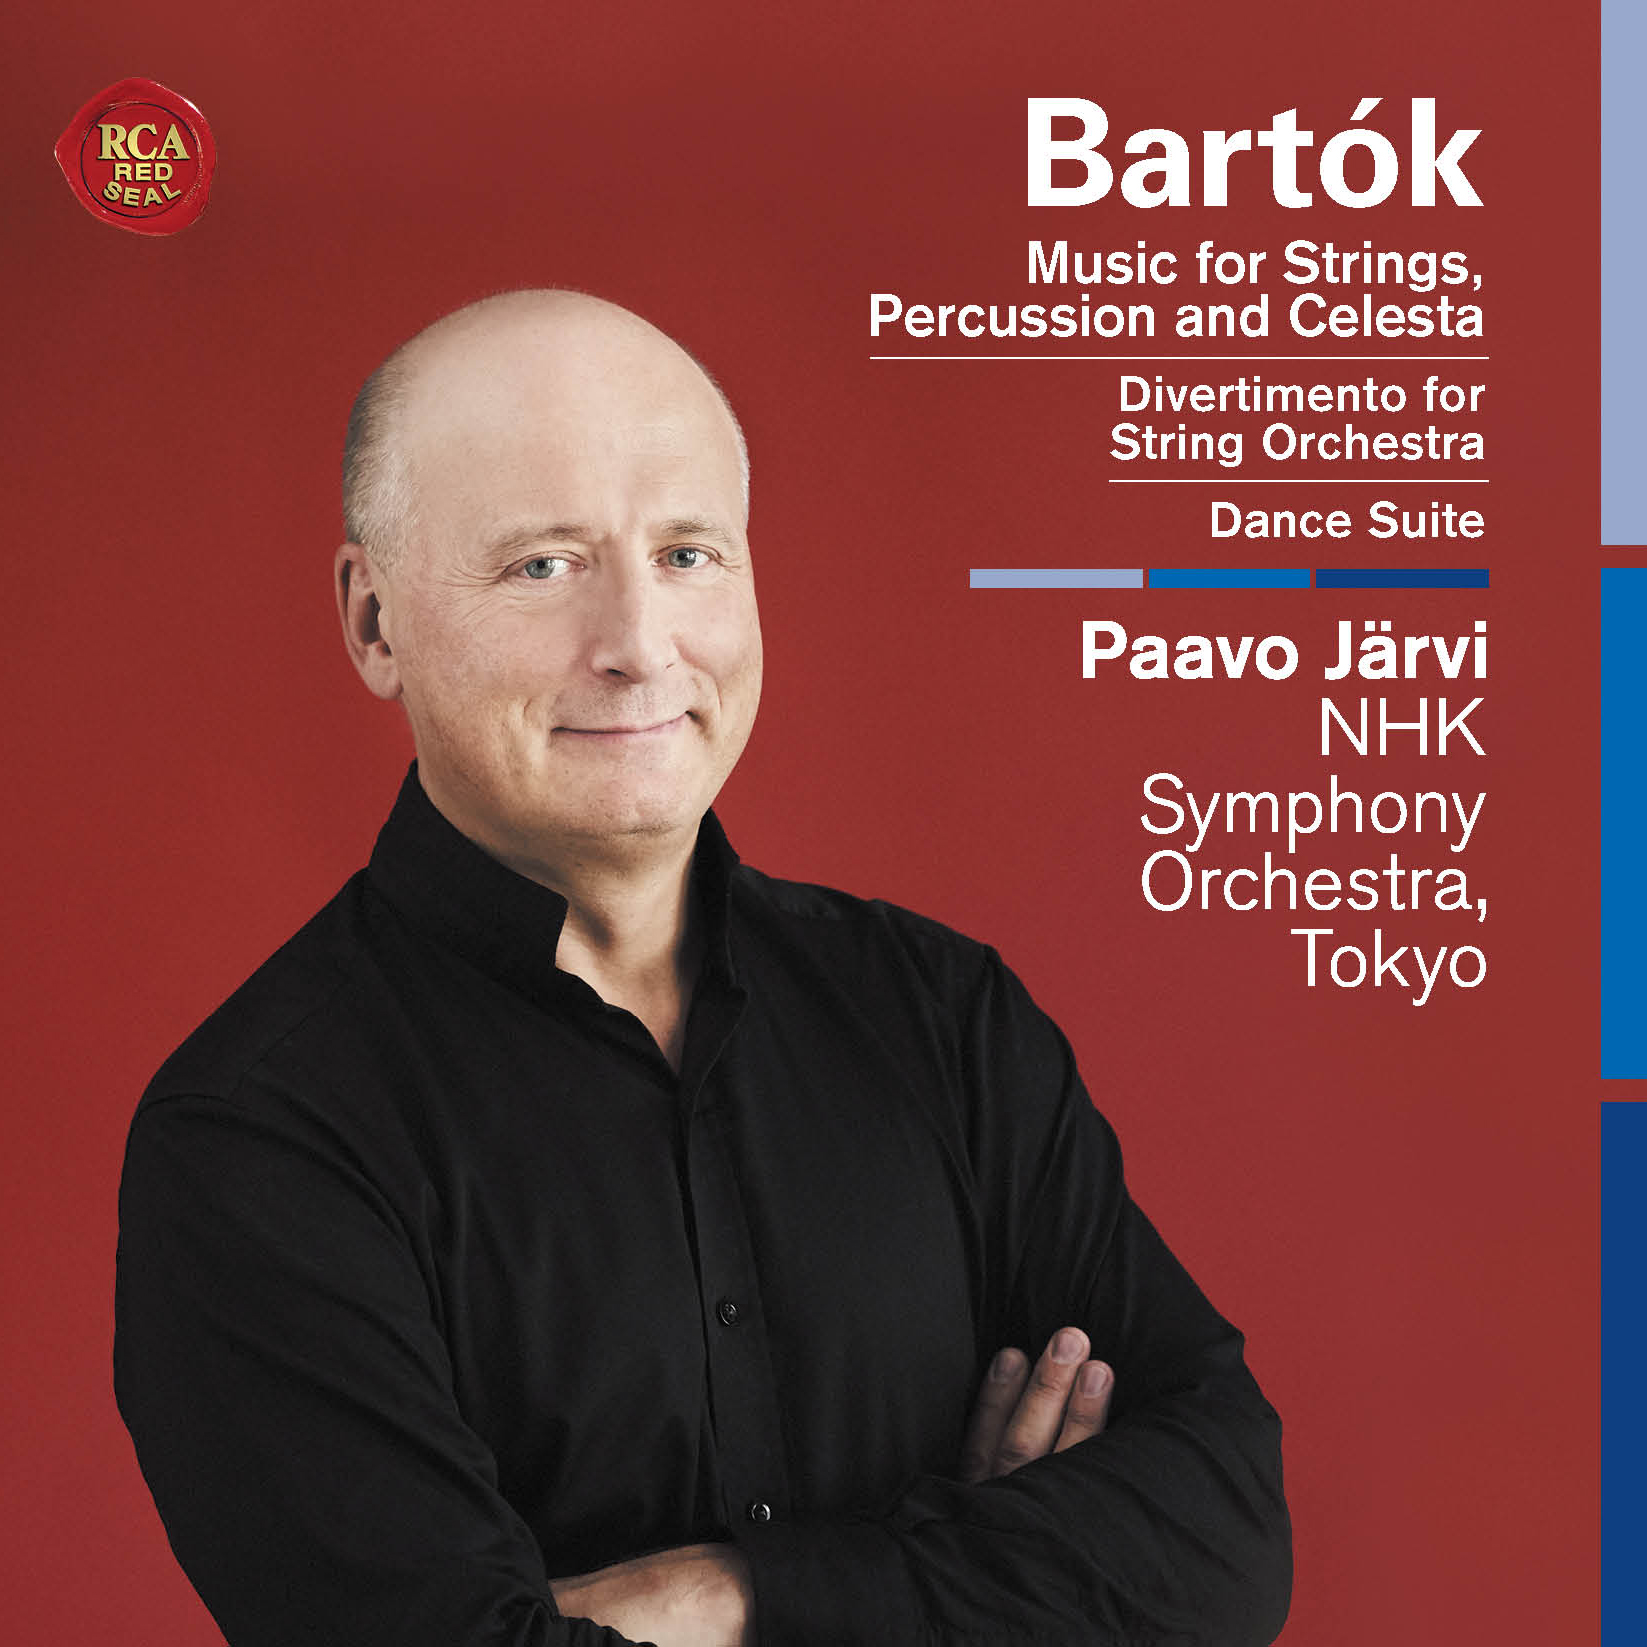 Bartók: Music for Strings, Percussion and Celesta, Divertimento for String Orchestra, Dance Suite - NHK Symphony Orchestra